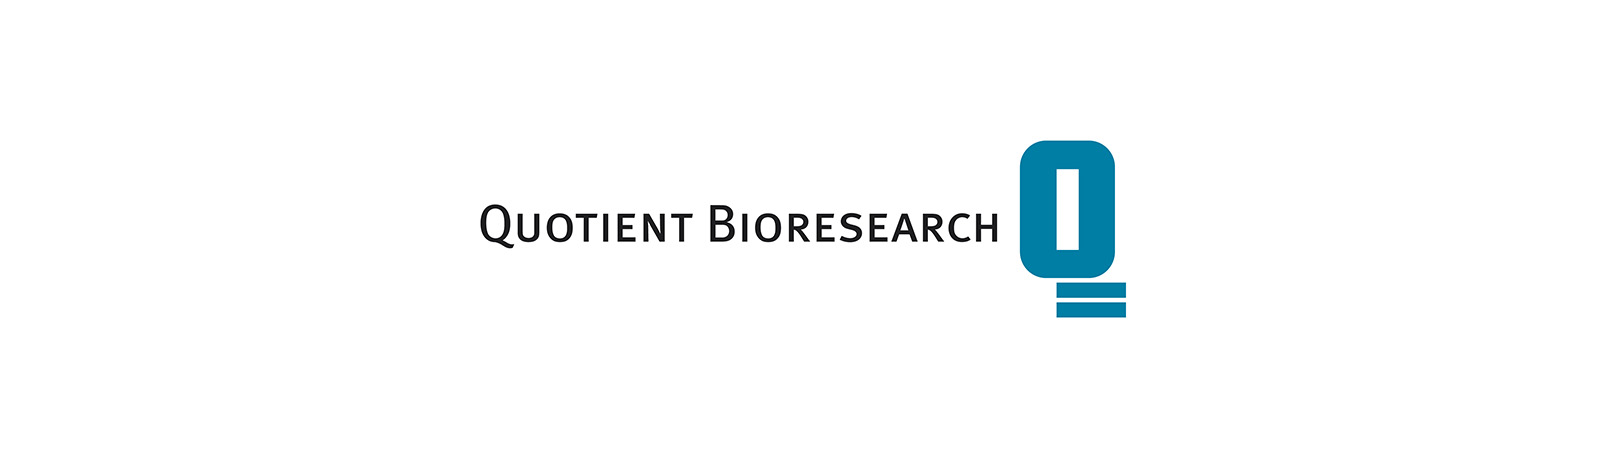 Quotient Bioresearch Holdings Limited logo image